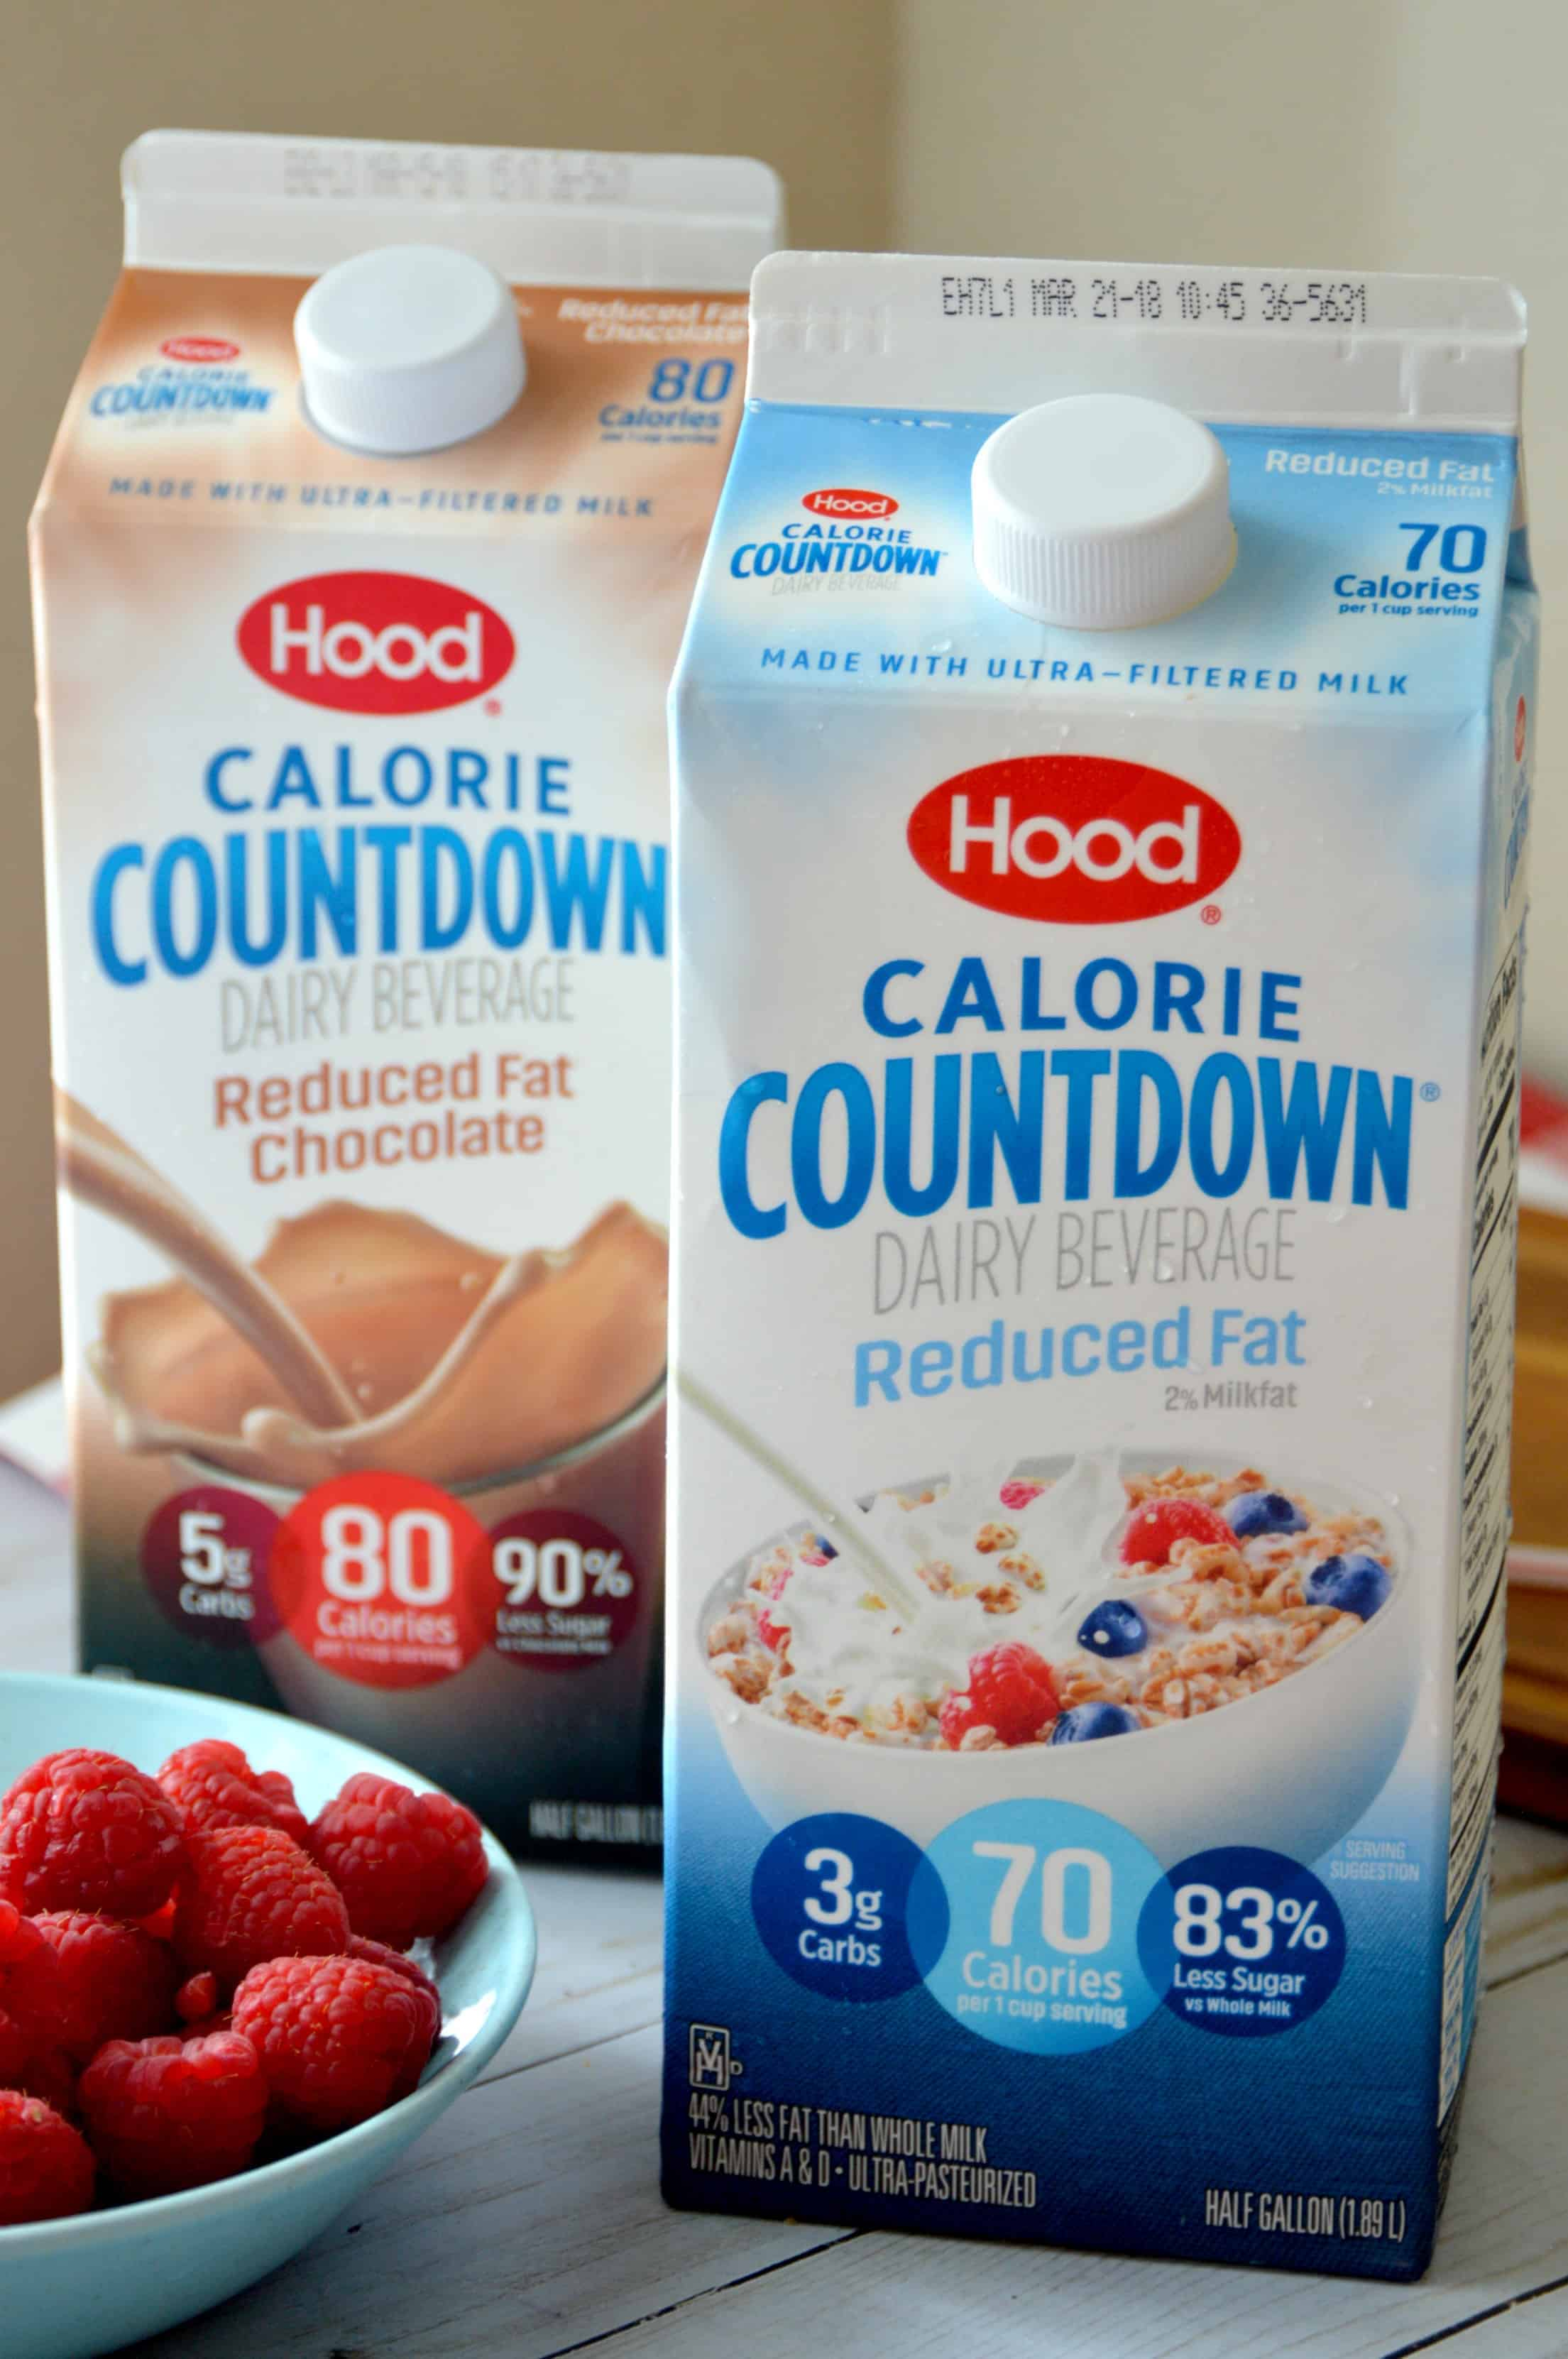 When Every Little Bit Counts: Hood Calorie Countdown